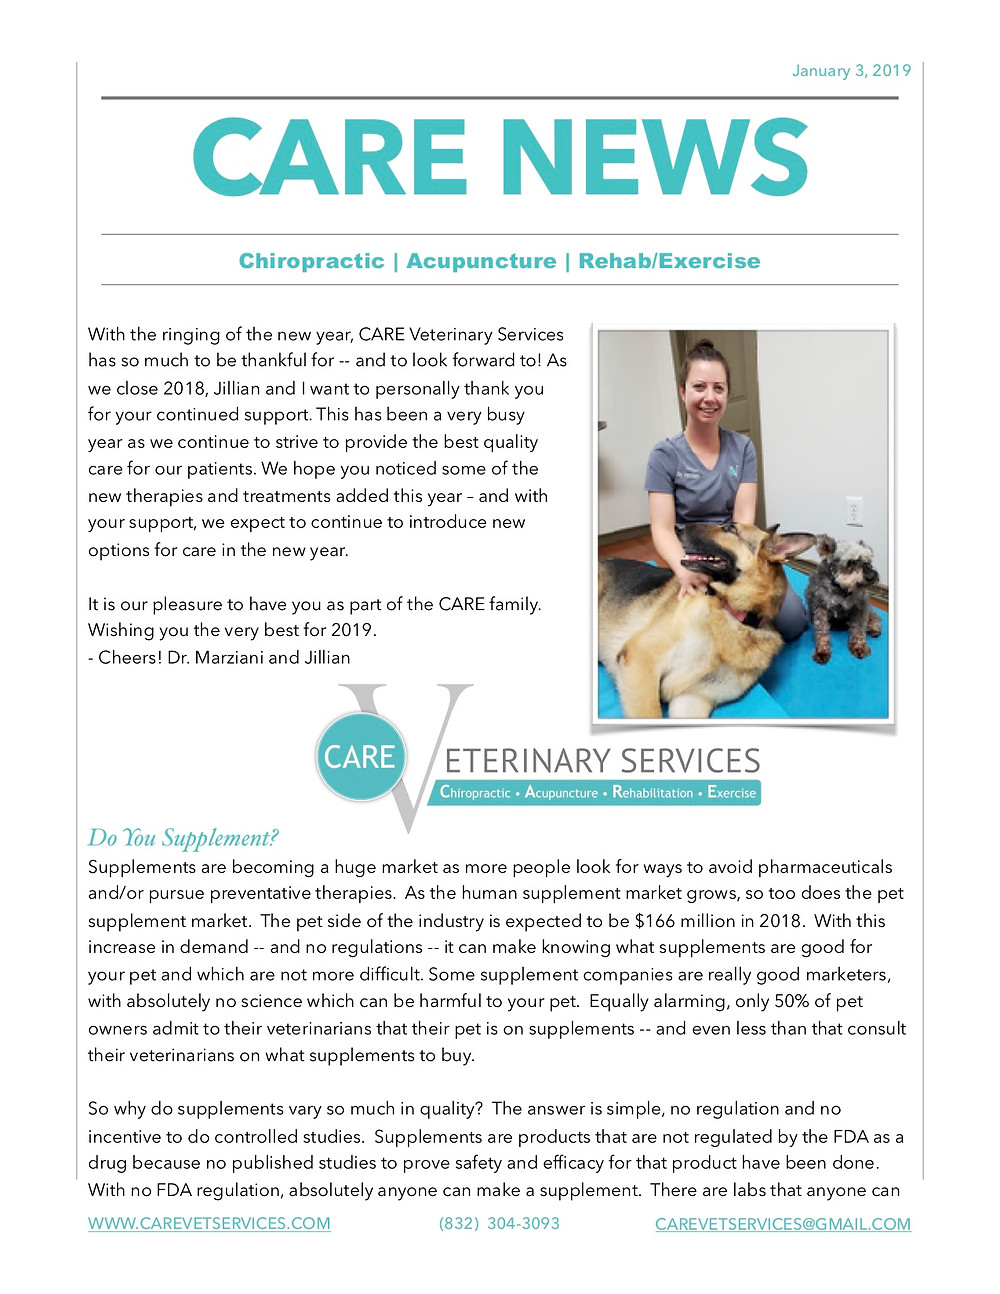 CARE VETERINARY REHAB, CANINE REHAB, CANINE CHIROPRACTIC, CANINE ACUPUNCTURE